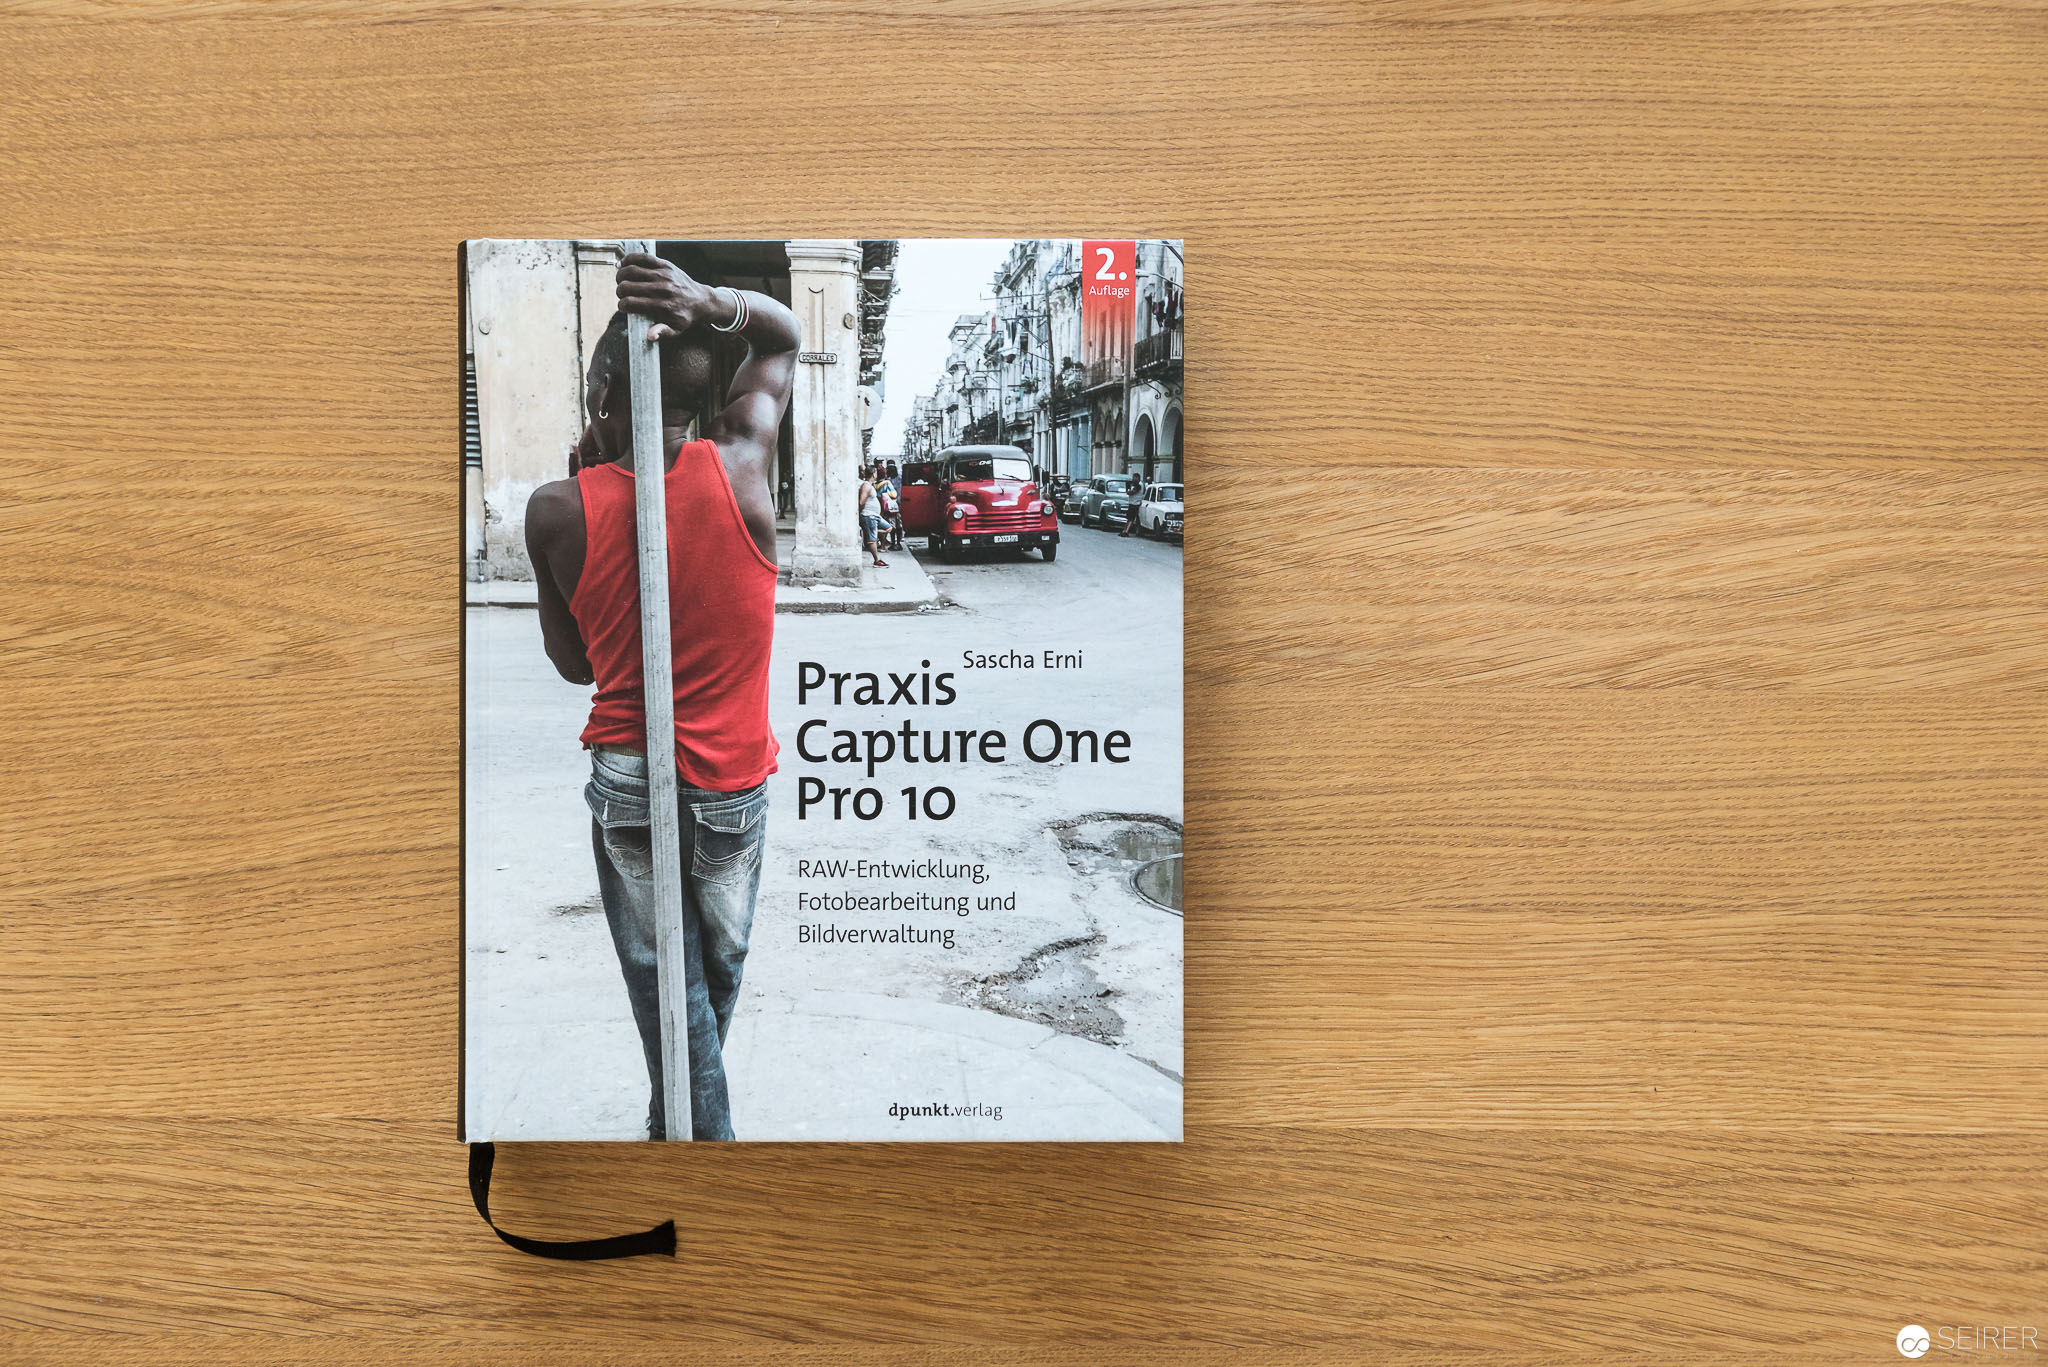 20170829 102824 Praxis Capture One Pro 10 78027